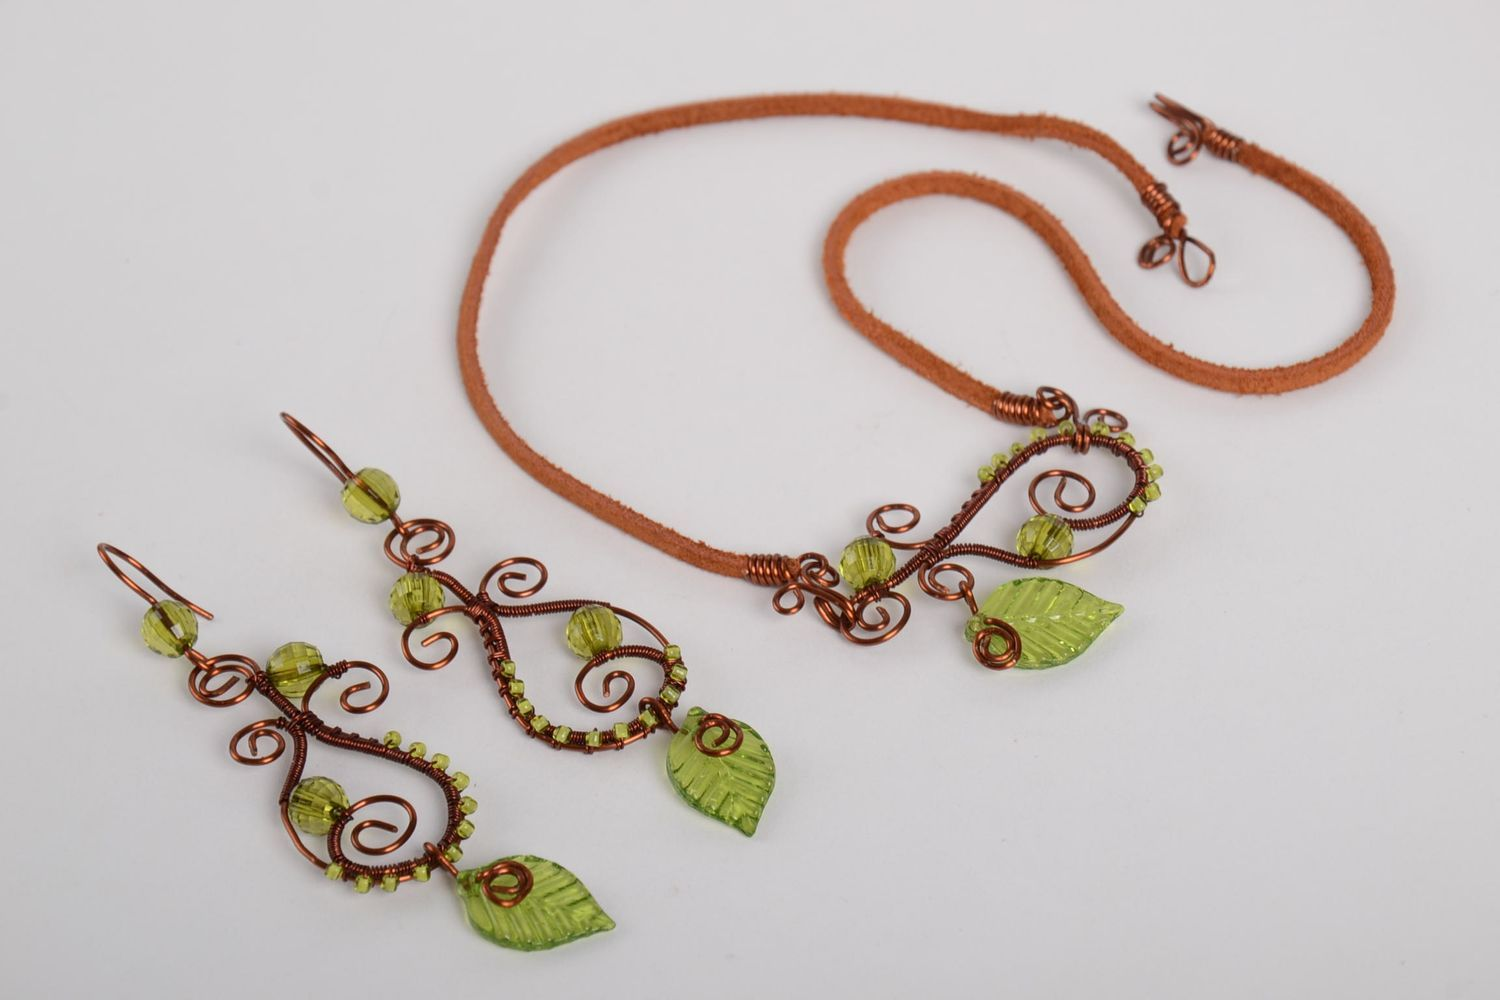 Handmade jewelry set of 2 items copper accessories for women gift ideas photo 5